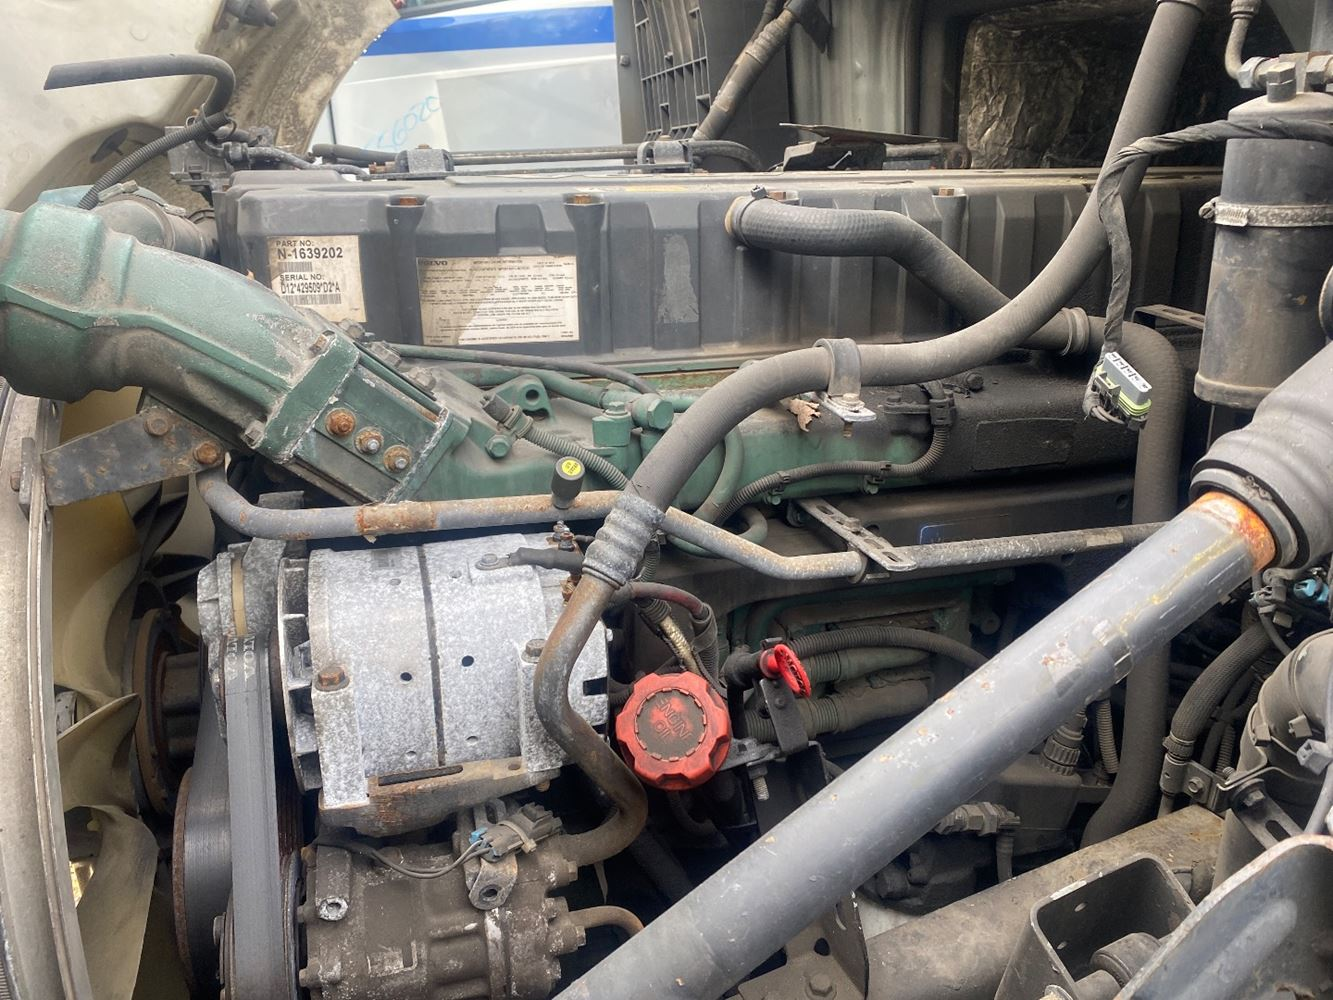 2005 VOLVO VE D12 ENGINE ASSEMBLY TRUCK PARTS #679854